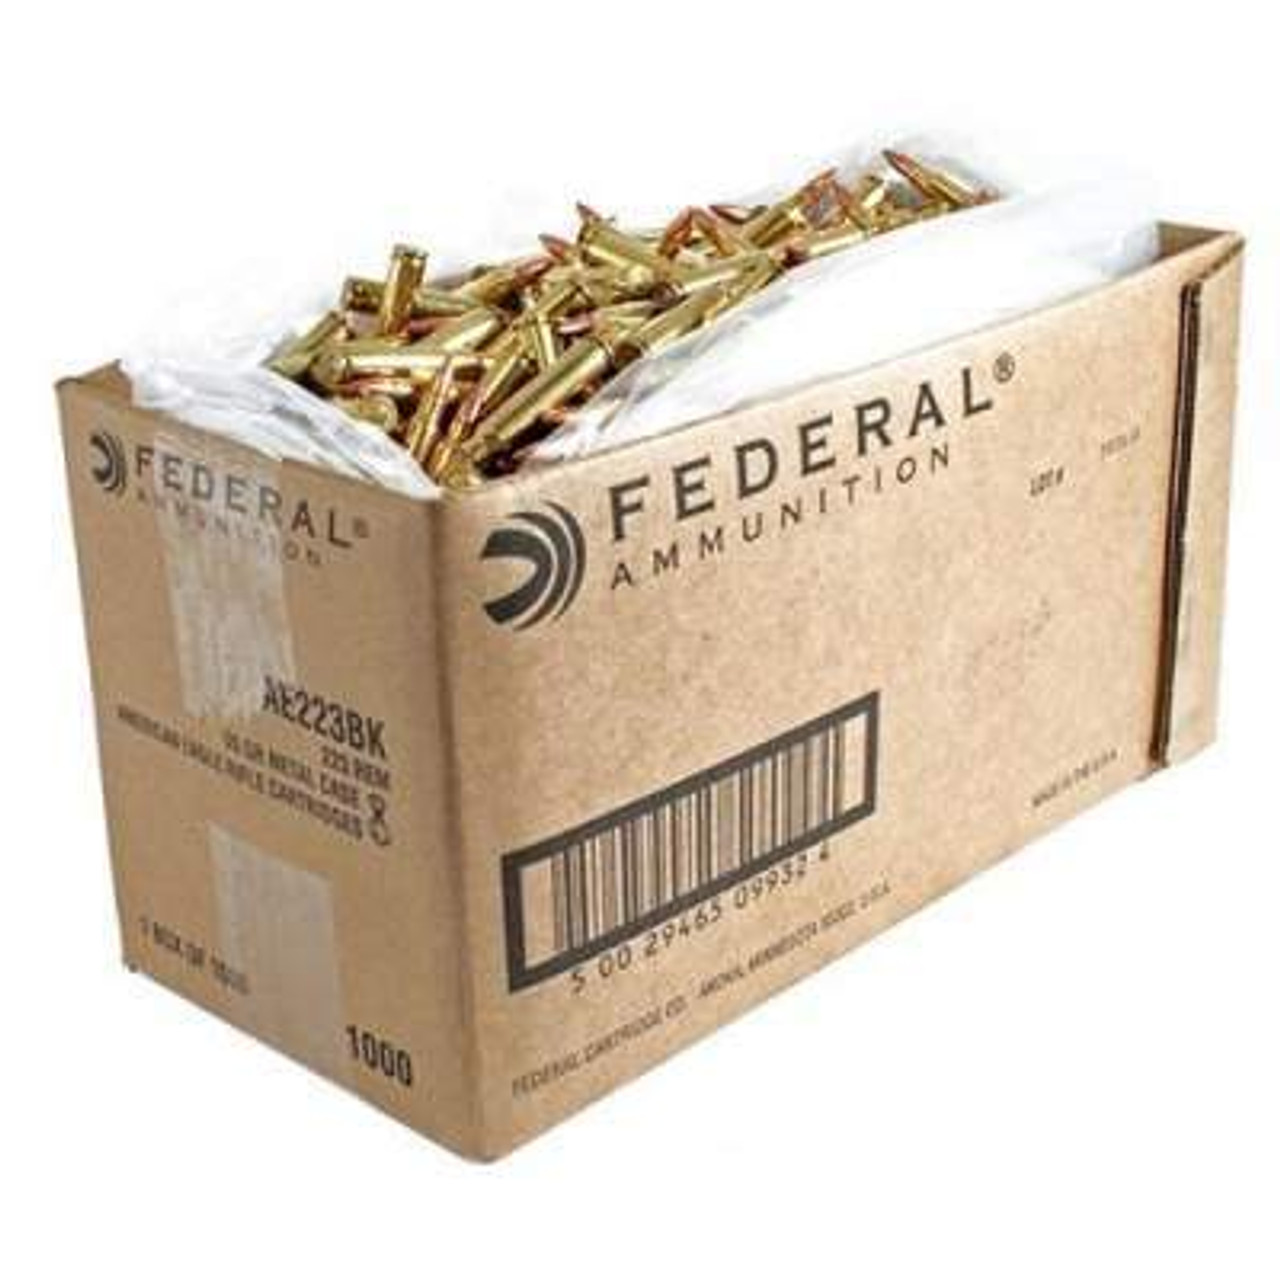 Federal 223 Rem Ammunition American Eagle AE223BK 55 Grain Full Metal  Jacket Bulk Case of 1,000 Rounds